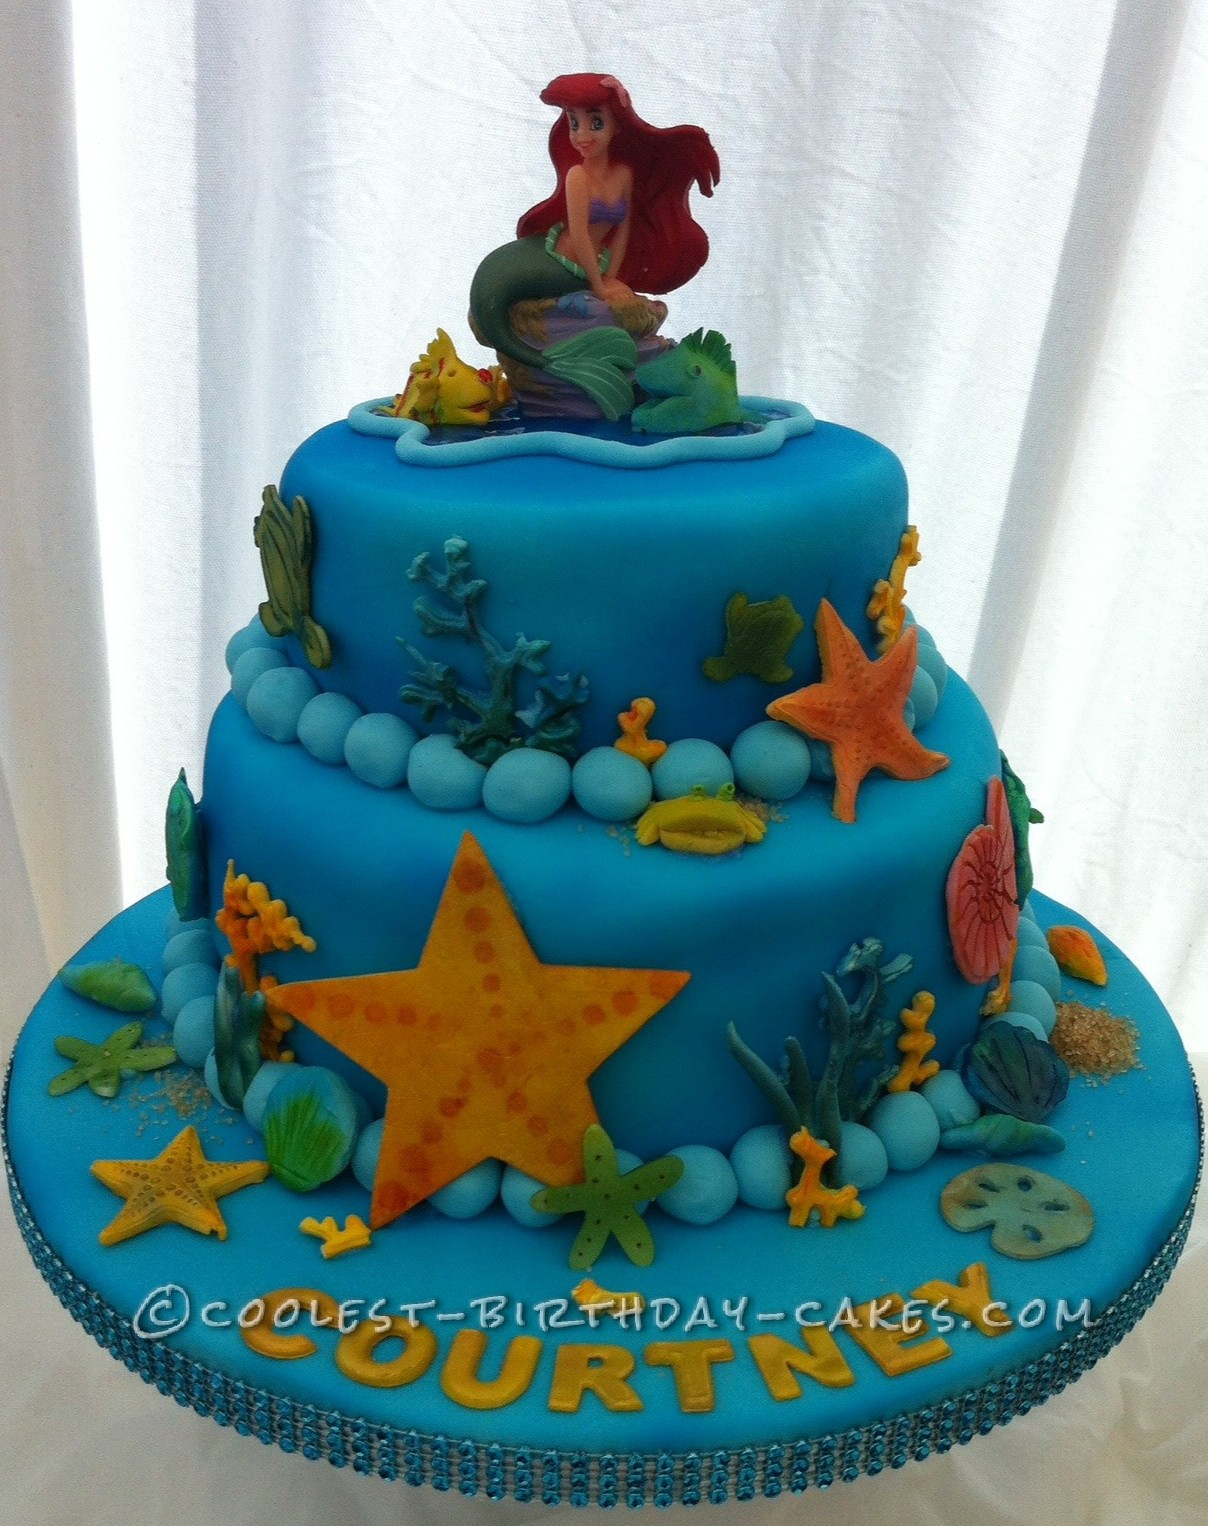 Cool Homemade 2-Tier Little Mermaid Cake